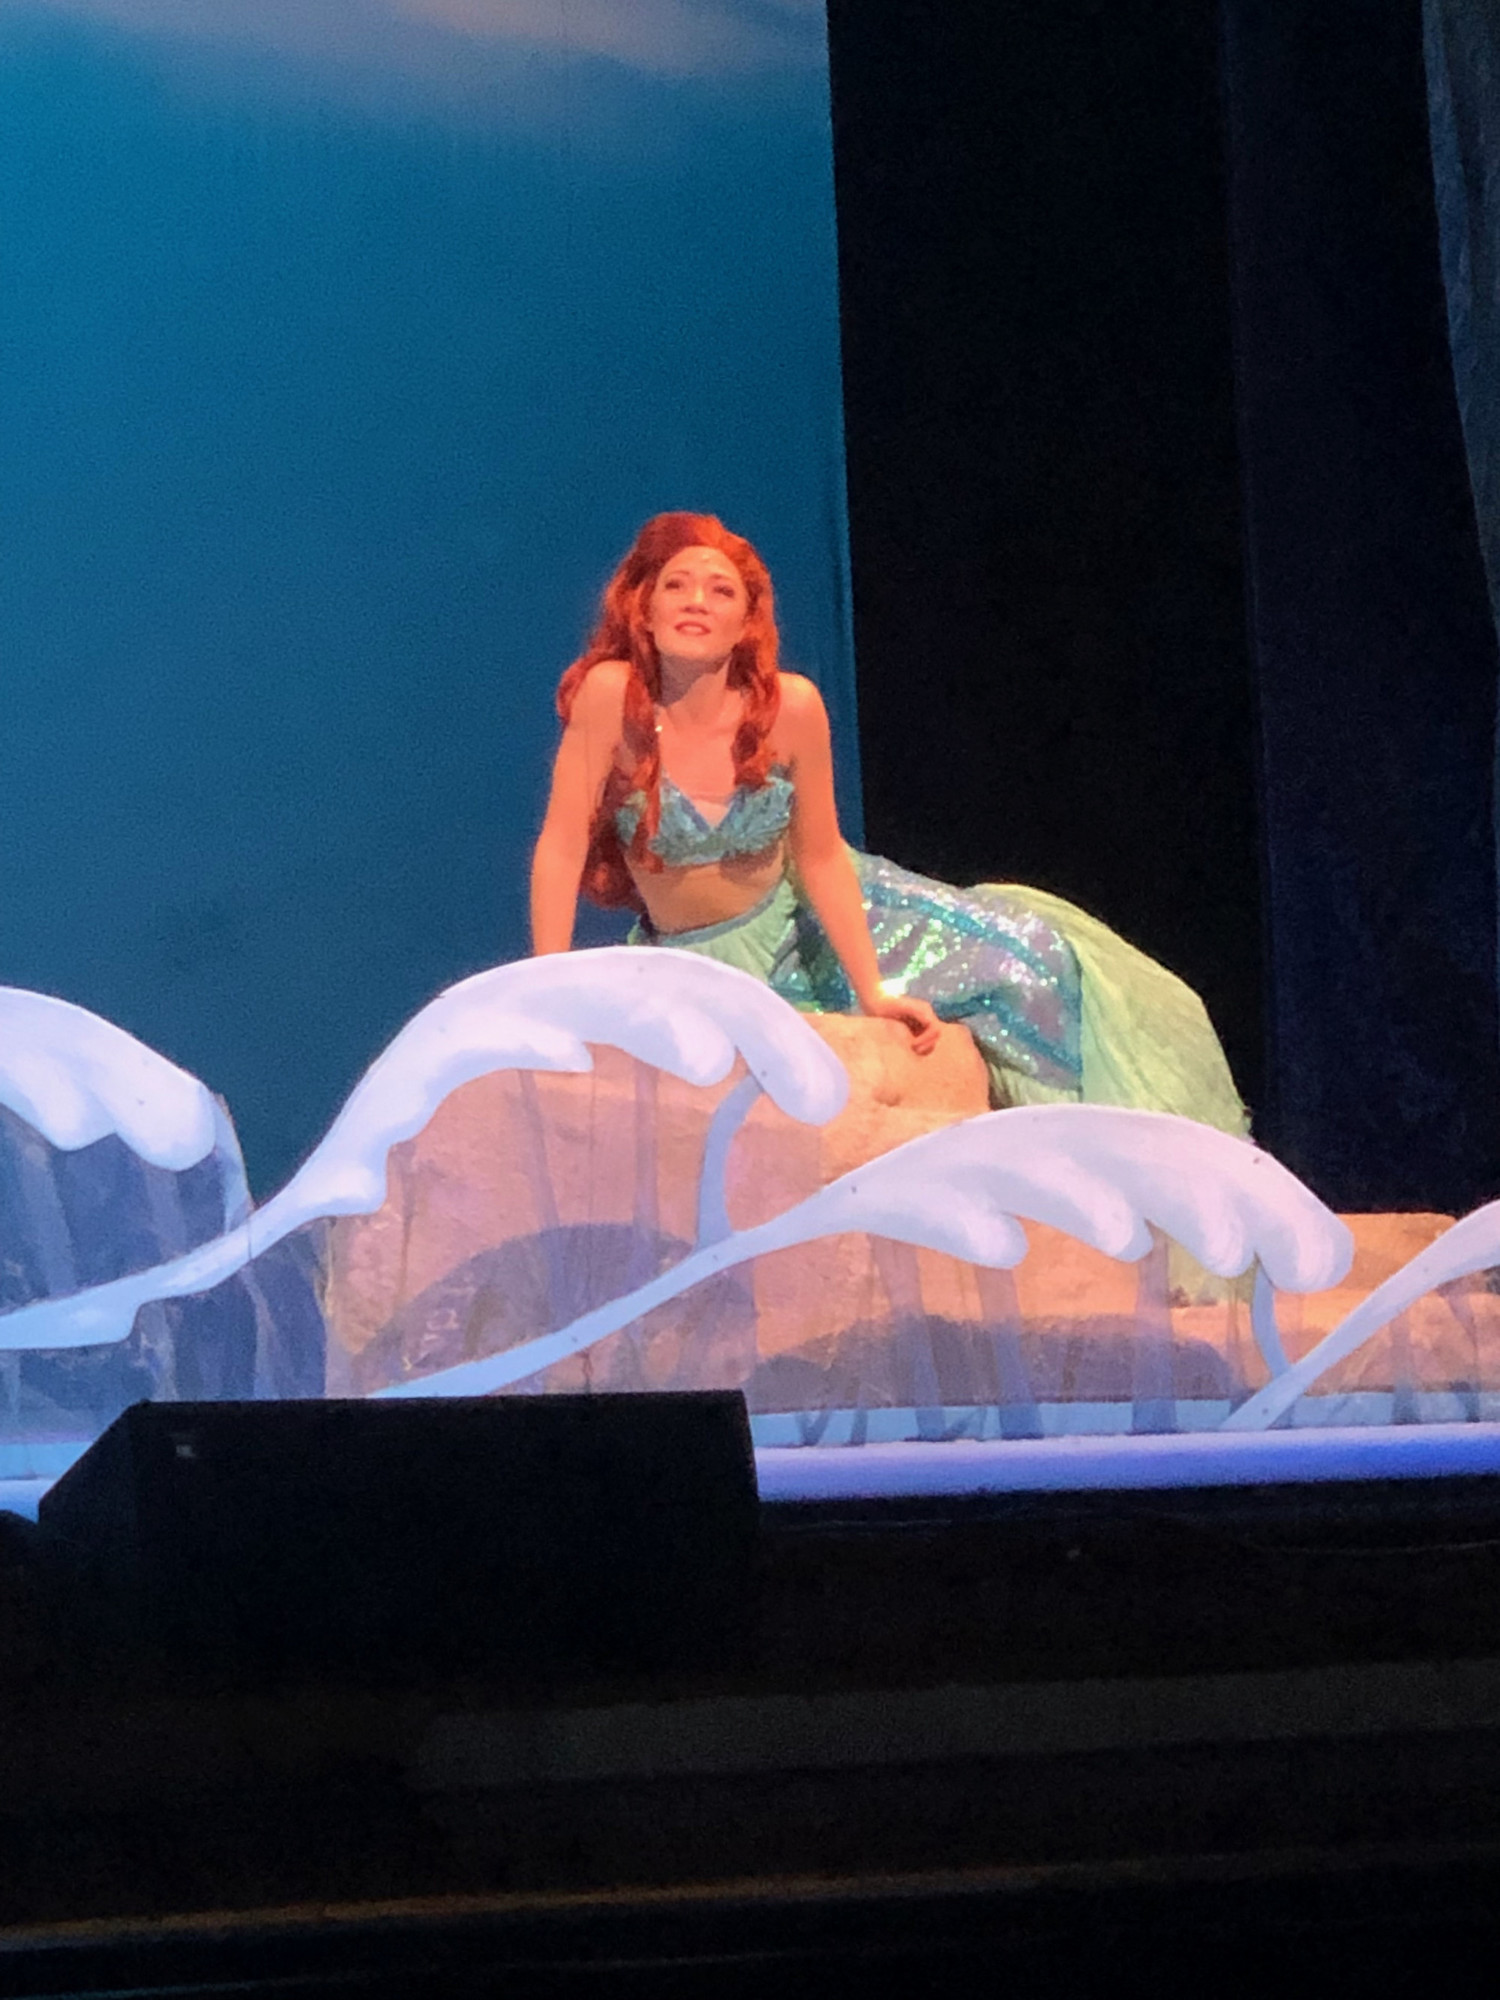 BWW Review: THE LITTLE MERMAID at Grand Rapids Civic Theatre, Invites You to Come and Be Part of Their World!